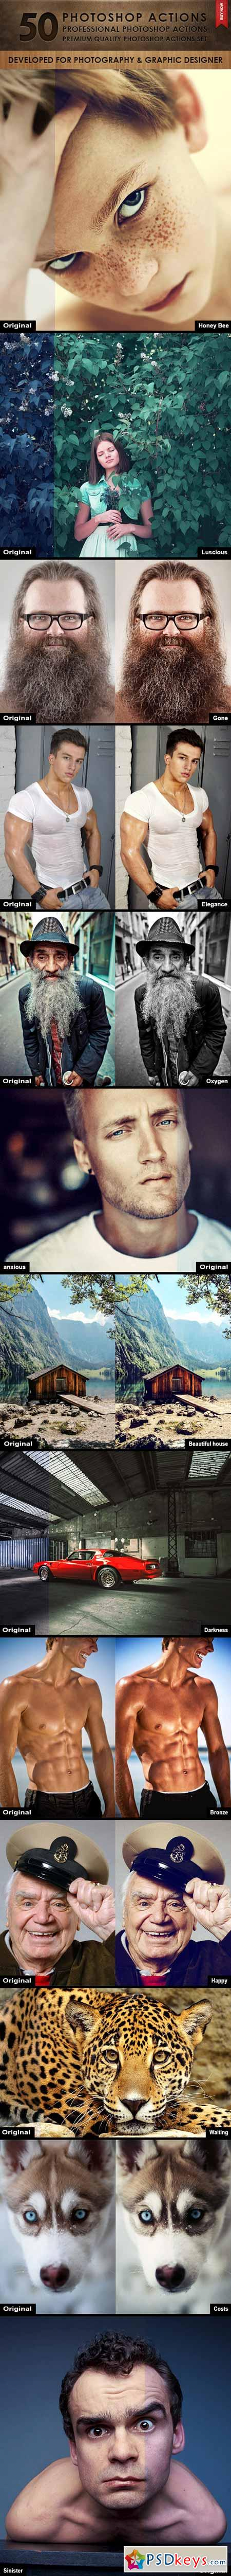 50 Photoshop Actions 9940610